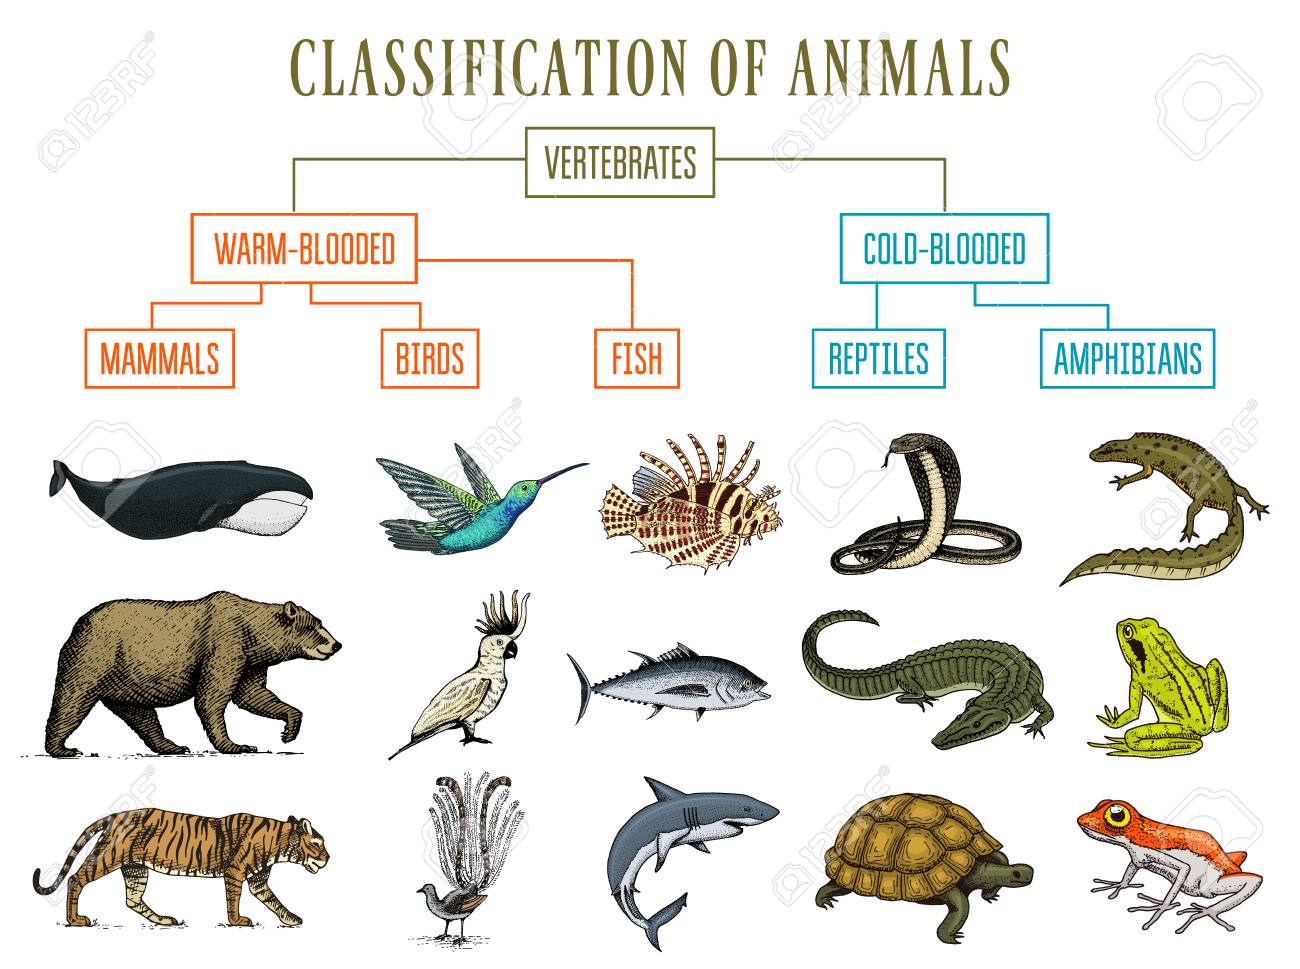 hight resolution of classification of animals reptiles amphibians mammals birds crocodile fish bear tiger whale snake frog